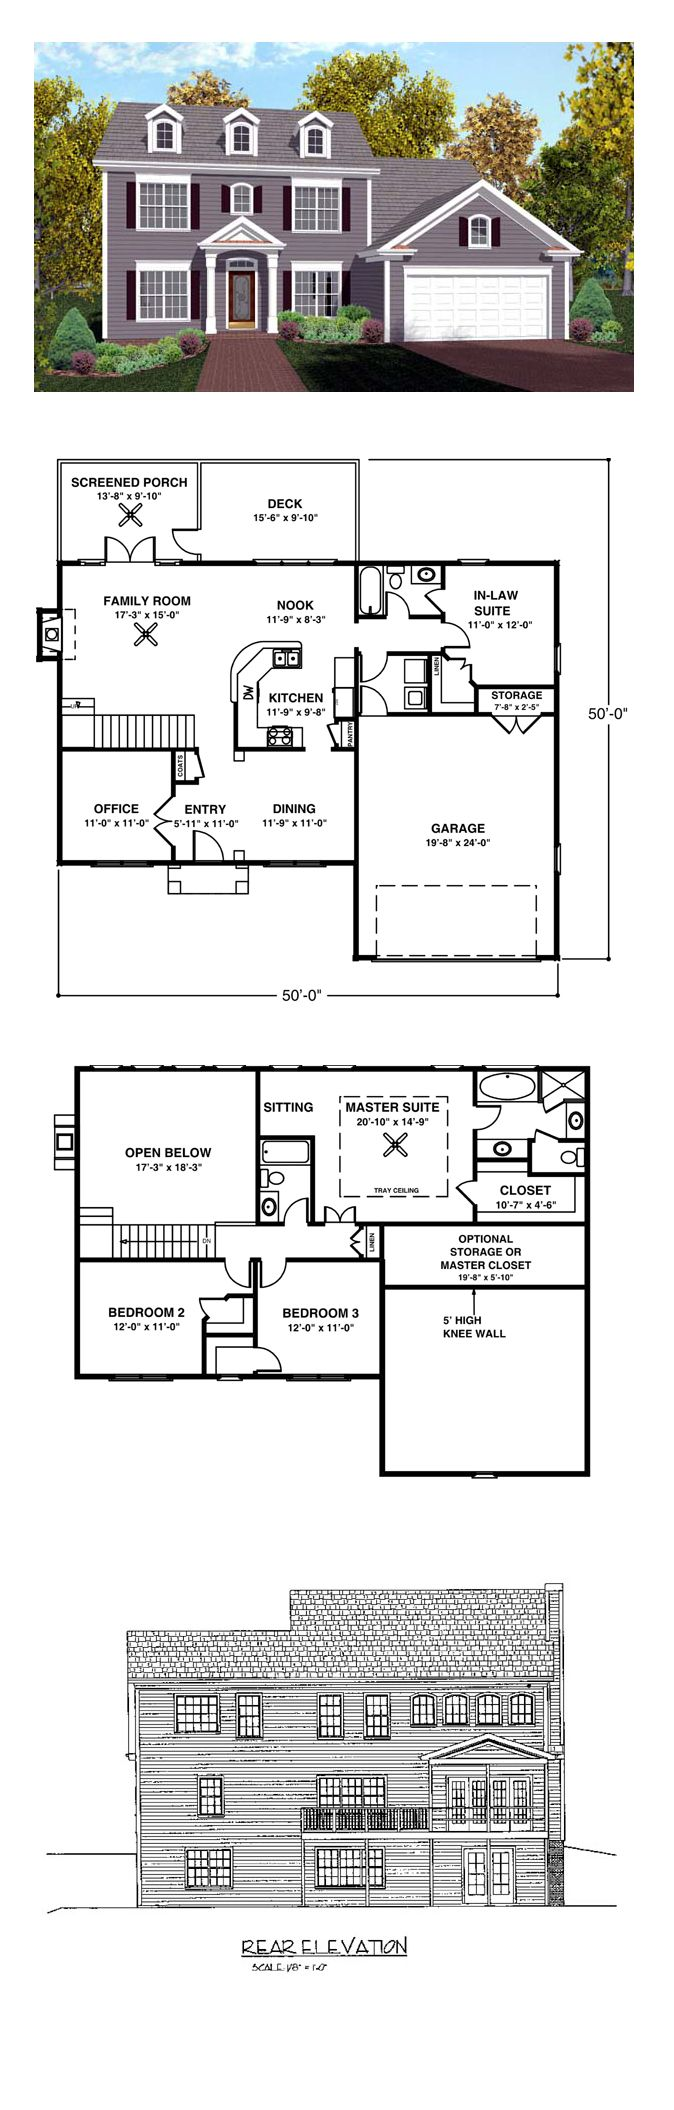 17 best images about house plans with in law suites on for In law suite plans